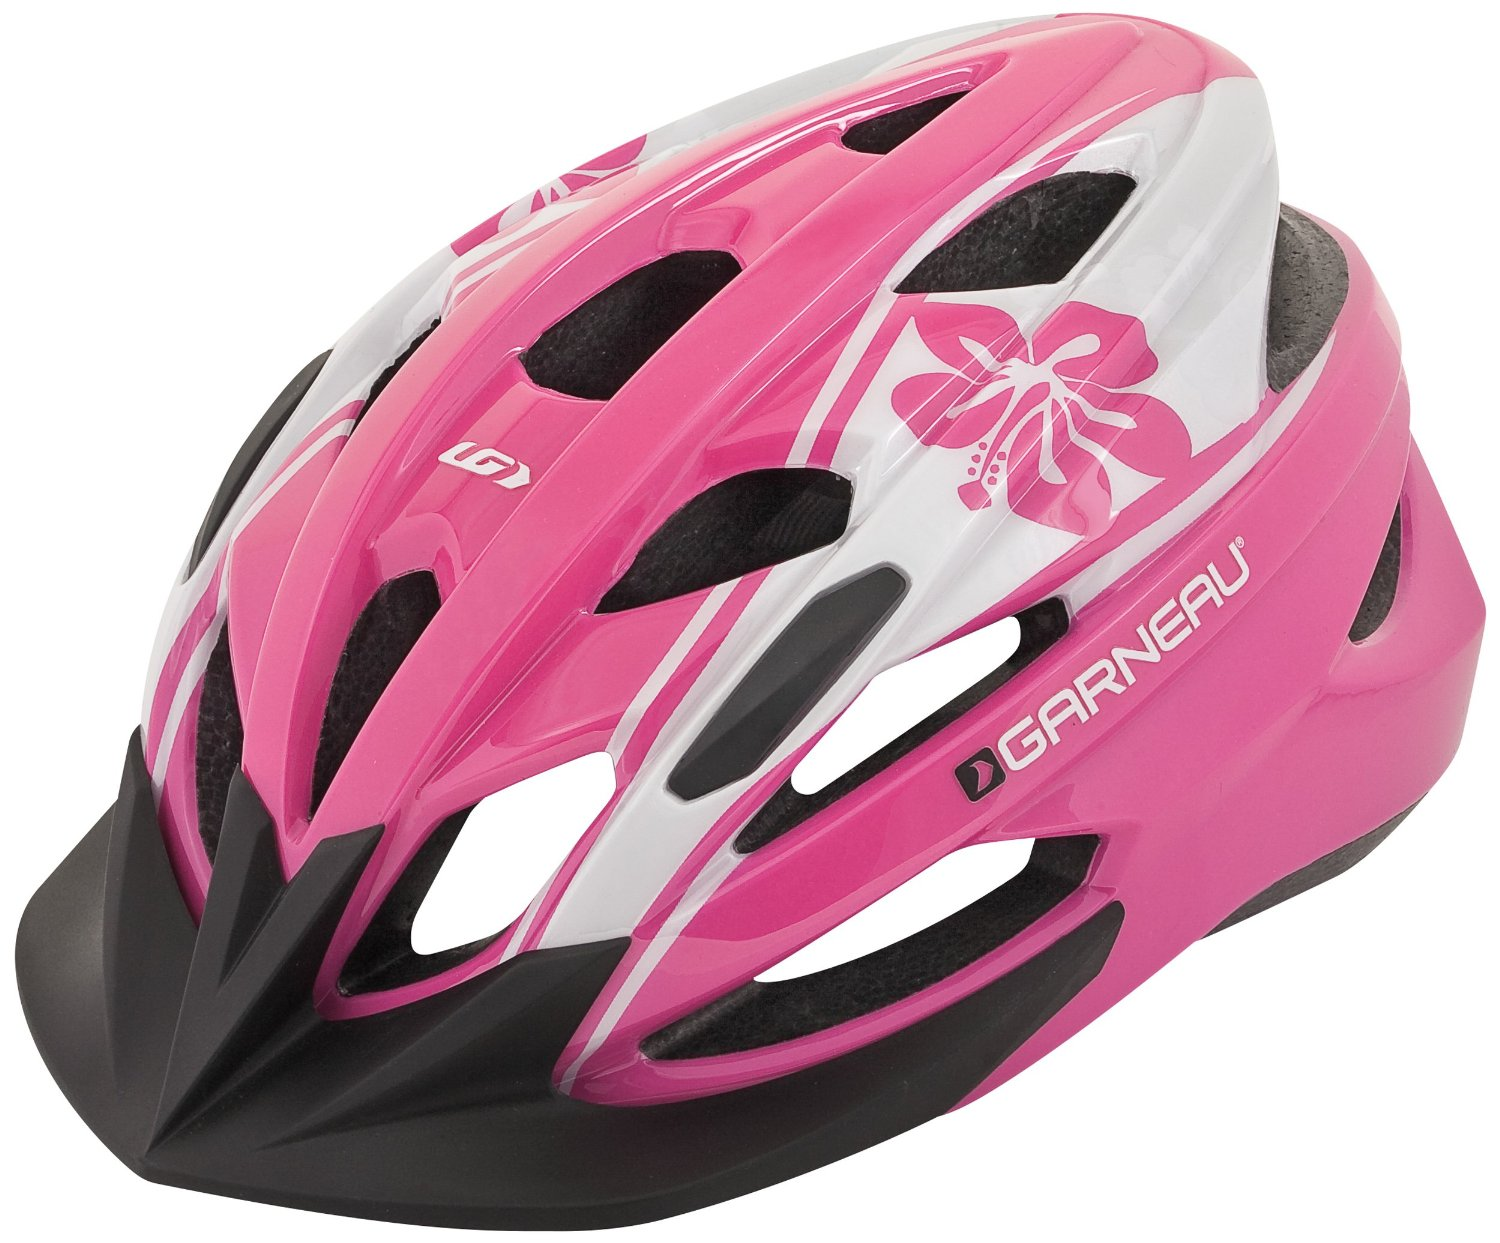 Garneau Kids & Youth Bicycle Helmets